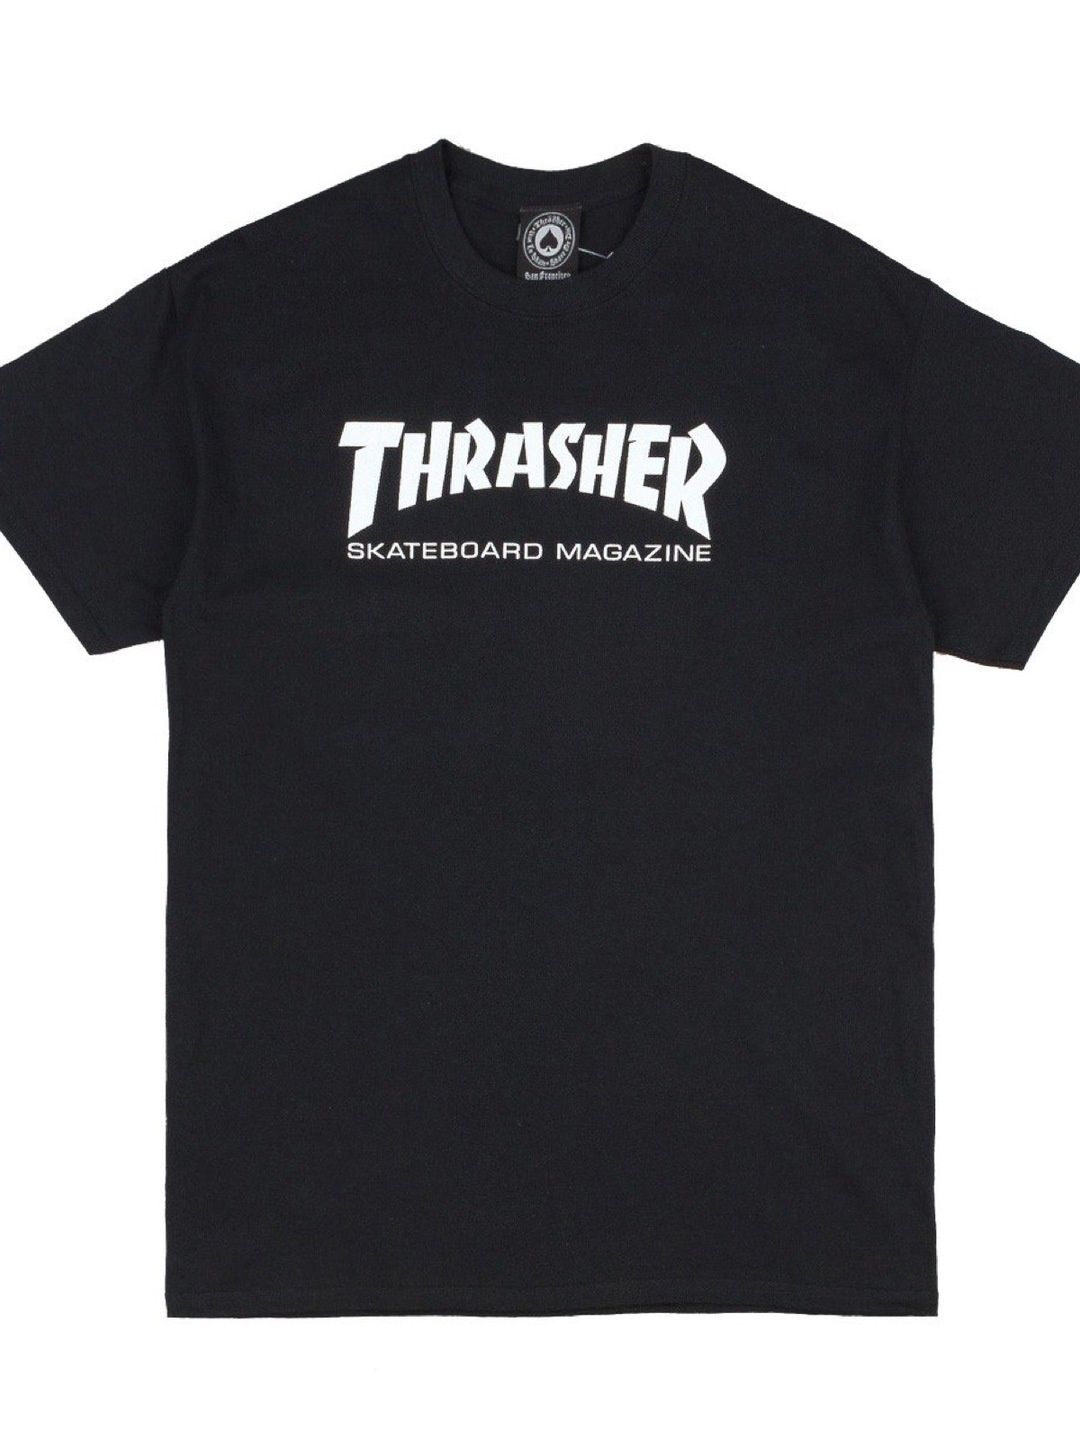 Damen tops & t-shirts - THRASHER photo 3